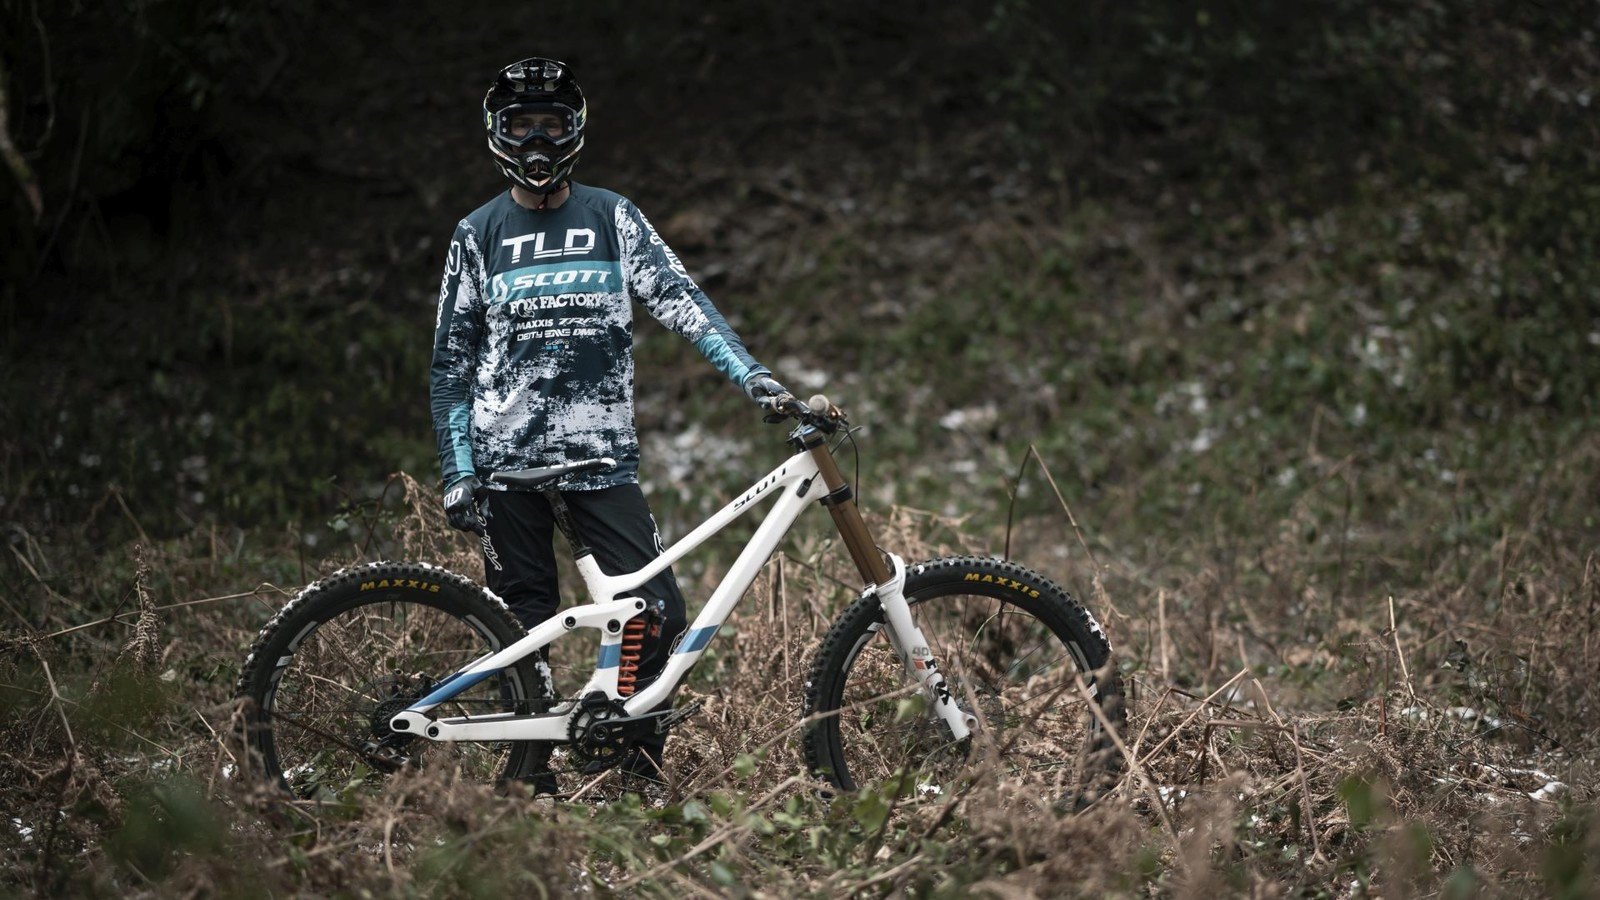 SCOTT Sports x Brendan Fairclough - the Story Continues!